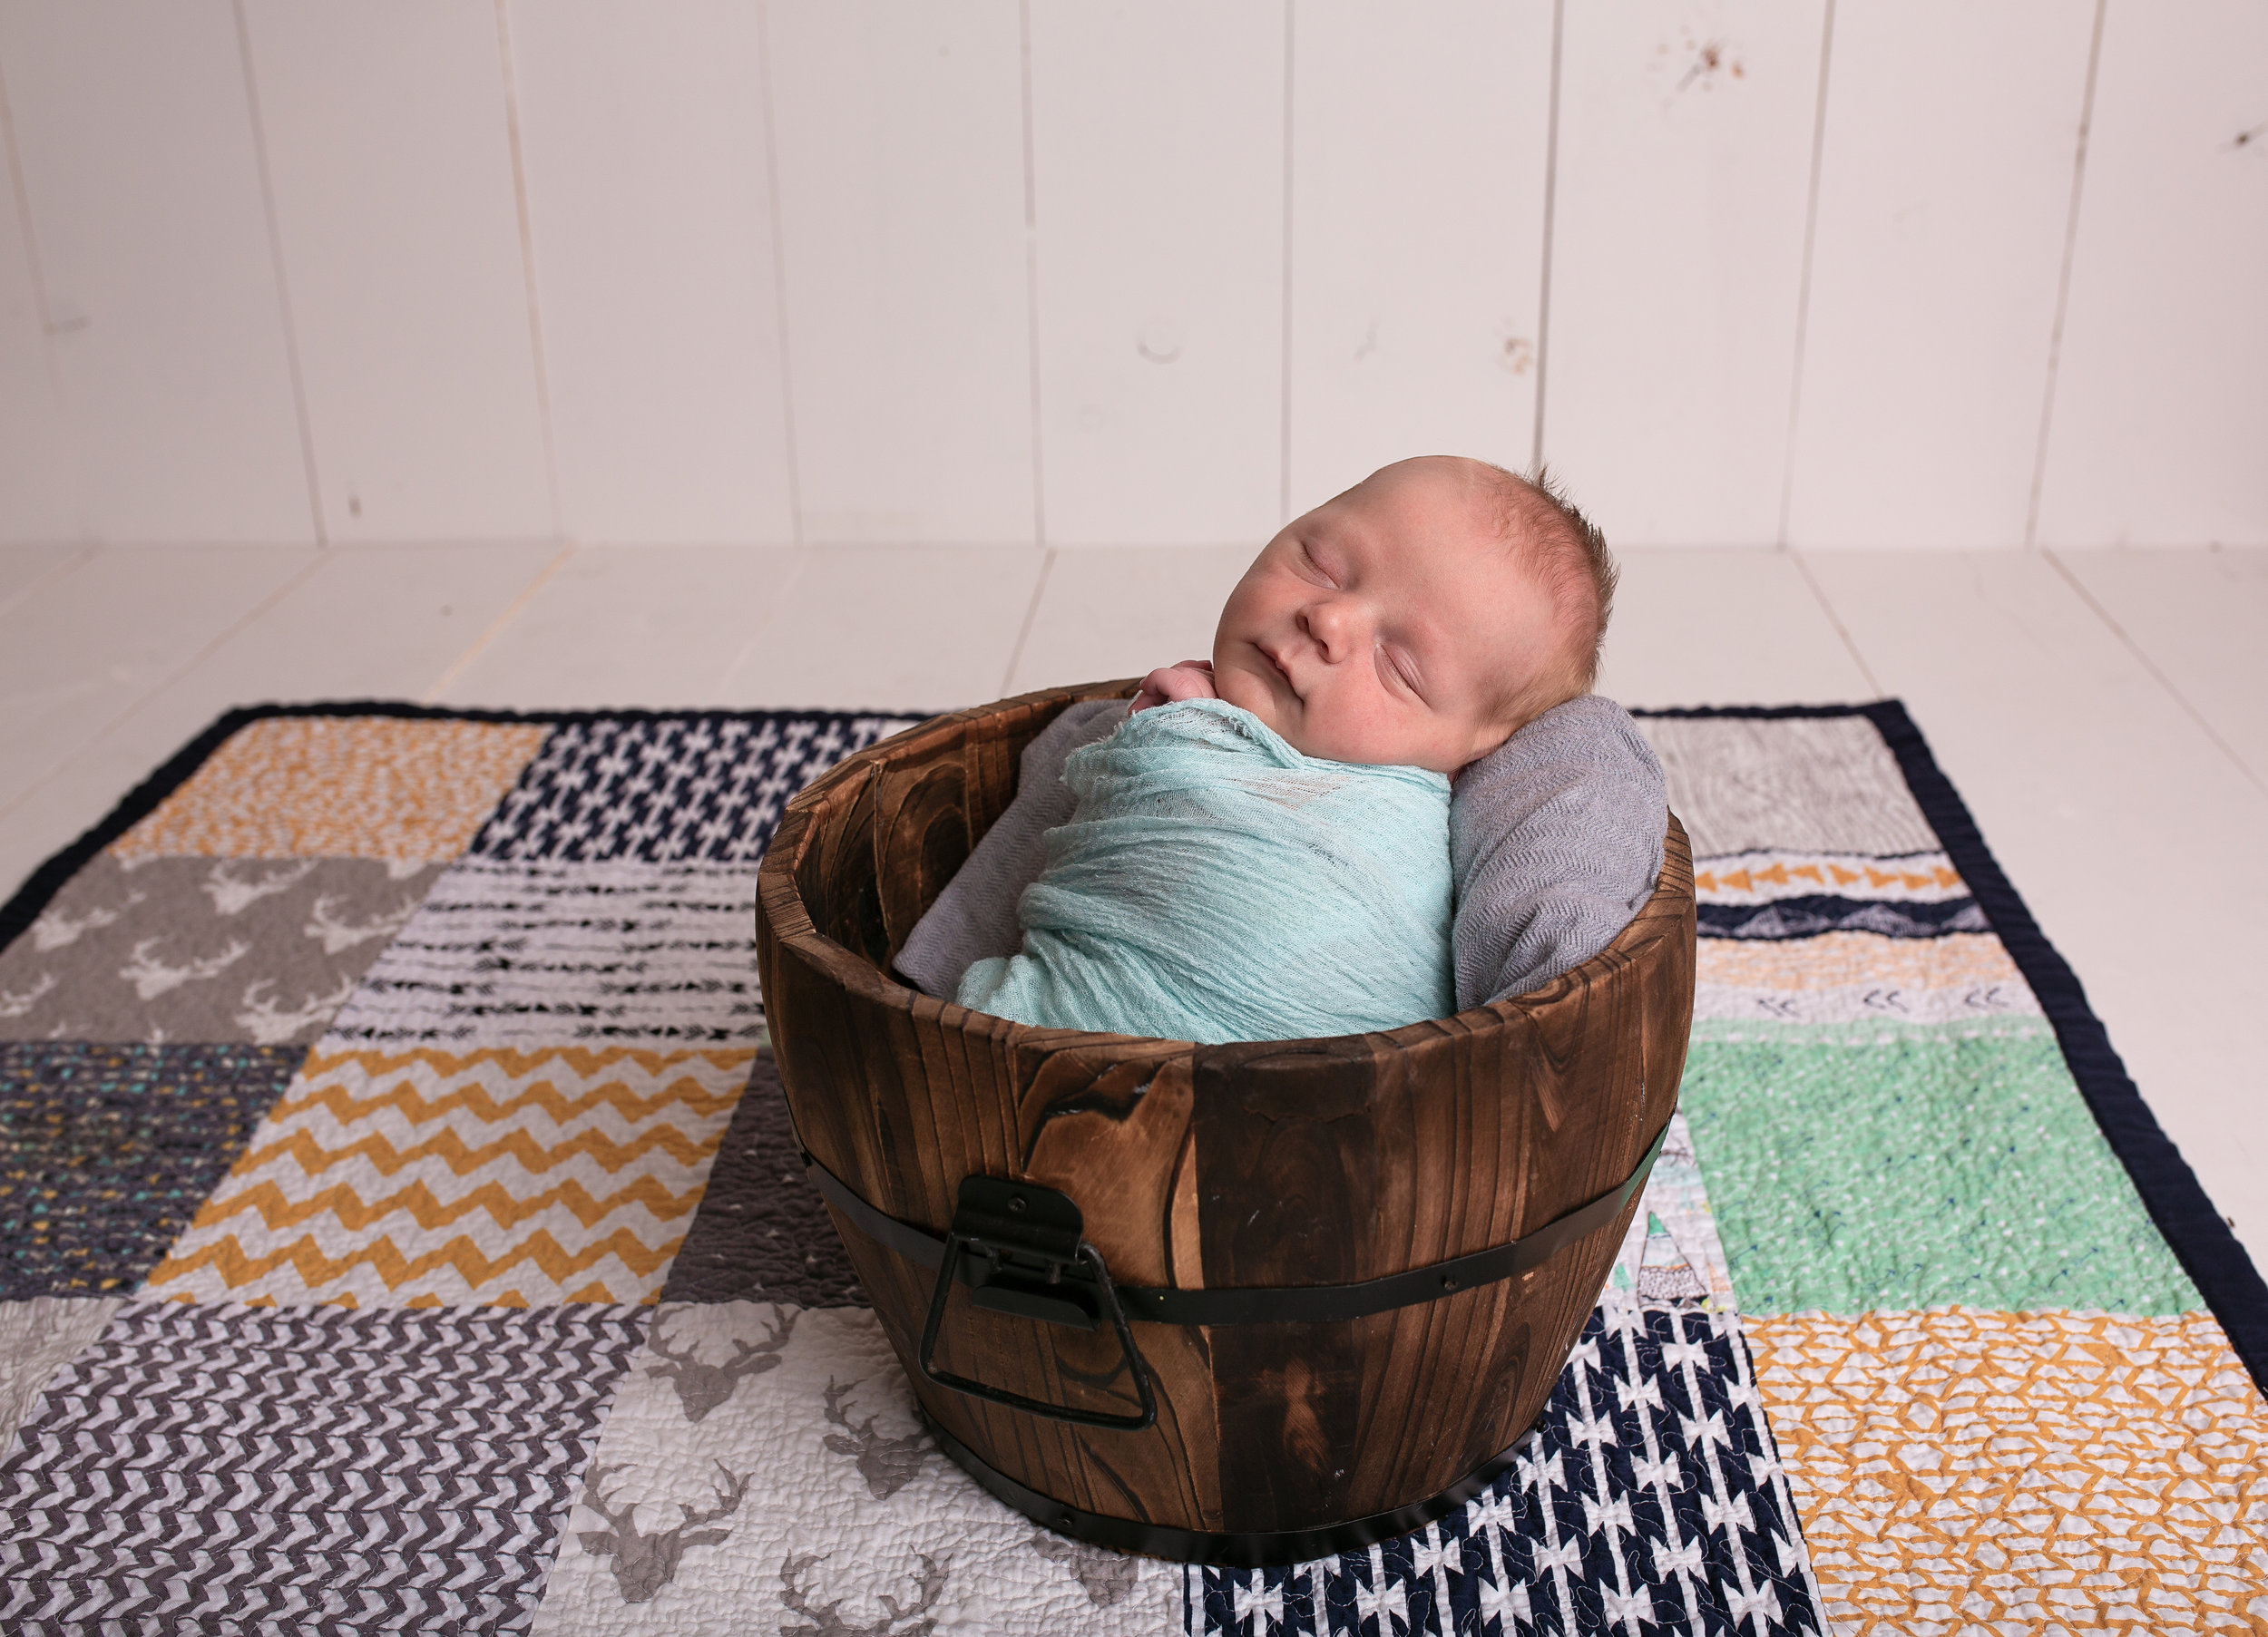 18_11_04 Melody Foster Newborn Session - Pryson47.jpg